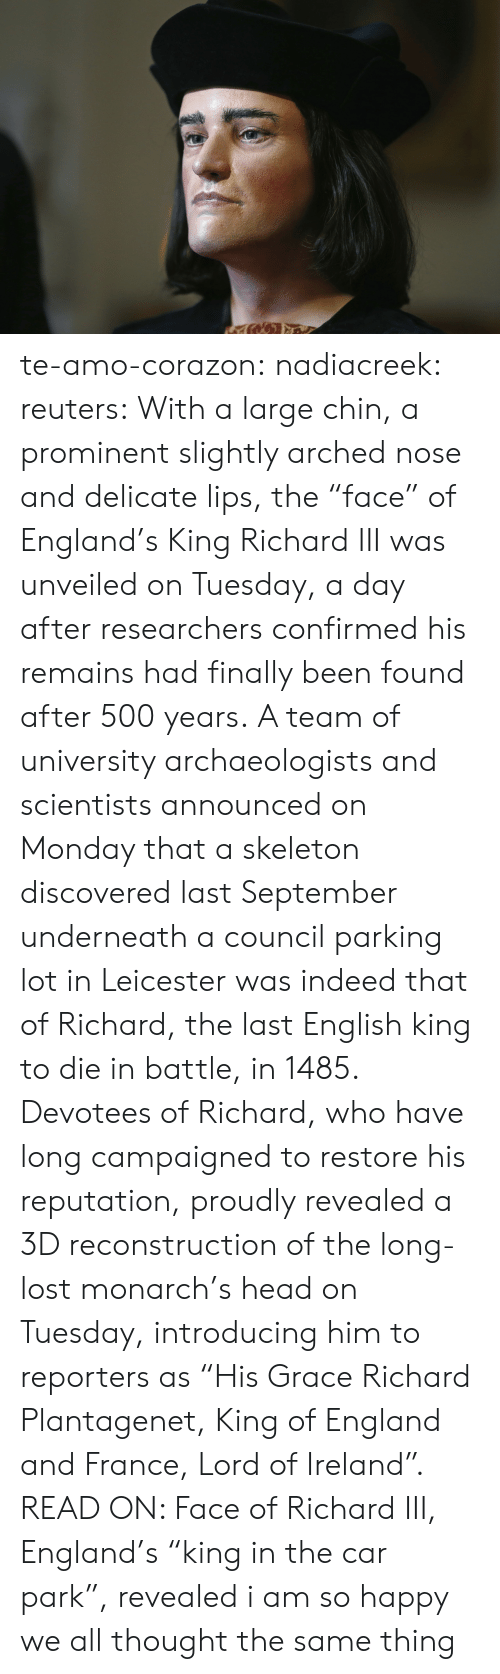 "England, Head, and Target: te-amo-corazon: nadiacreek:  reuters:  With a large chin, a prominent slightly arched nose and delicate lips, the ""face"" of England's King Richard III was unveiled on Tuesday, a day after researchers confirmed his remains had finally been found after 500 years. A team of university archaeologists and scientists announced on Monday that a skeleton discovered last September underneath a council parking lot in Leicester was indeed that of Richard, the last English king to die in battle, in 1485. Devotees of Richard, who have long campaigned to restore his reputation, proudly revealed a 3D reconstruction of the long-lost monarch's head on Tuesday, introducing him to reporters as ""His Grace Richard Plantagenet, King of England and France, Lord of Ireland"". READ ON: Face of Richard III, England's ""king in the car park"", revealed     i am so happy we all thought the same thing"